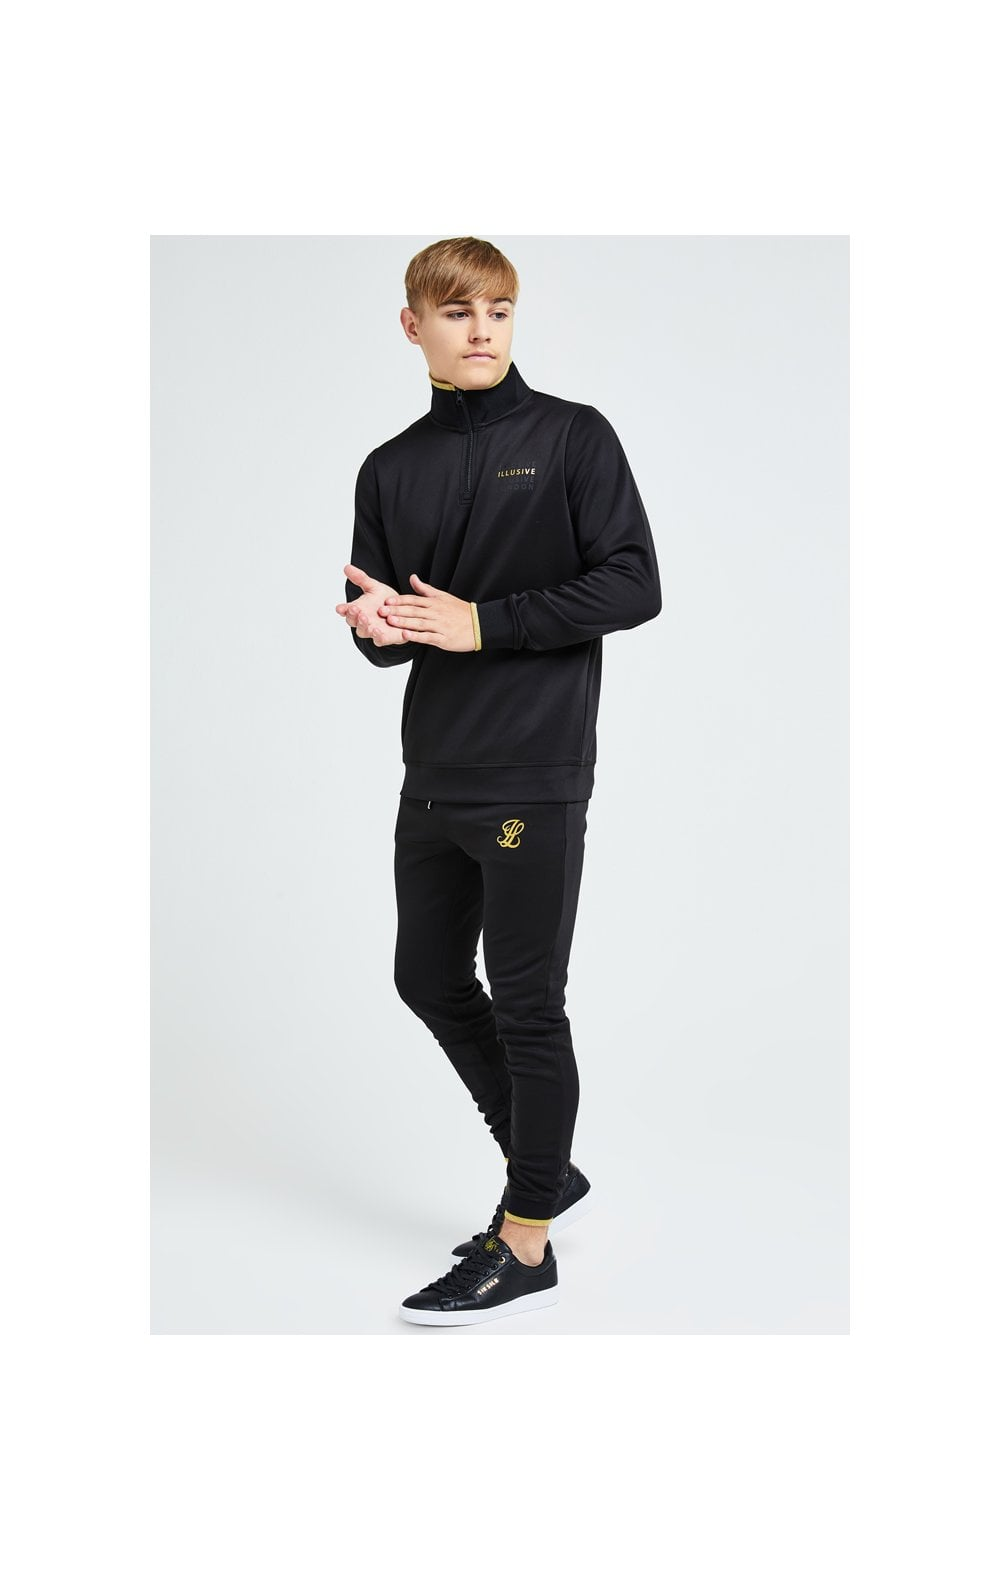 Illusive London Sovereign 1/4 Zip Hoodie  - Black & Gold (3)